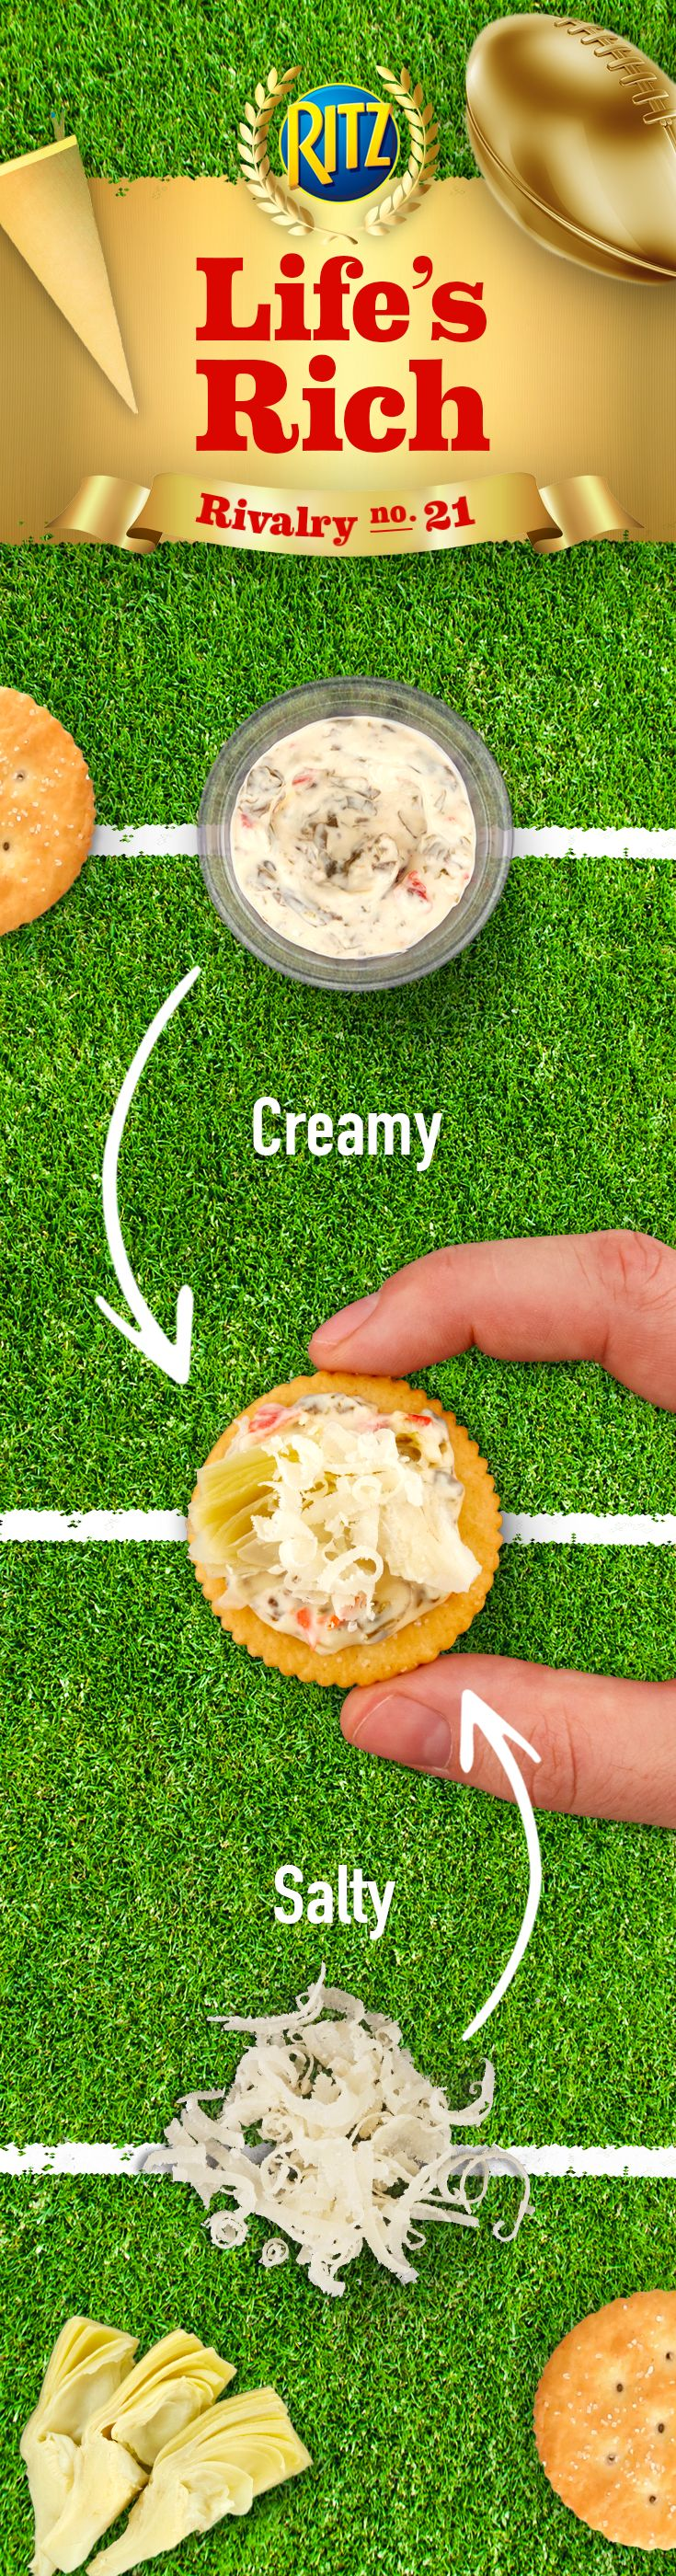 Football party? Nothing brings rivals together like a good appetizer. Create your mouth's fantasy team with creamy spinach dip paired up with salty Parmesan cheese. Two different flavors coming together to make baked Spinach Dip-Artichoke Toppers? That's a touchdown. Follow this easy and delicious recipe: 1. Top RITZ Crackers w/ spinach dip & artichoke hearts 2. Add Parmesan cheese. Have a ball with this creamy and salty appetizer!